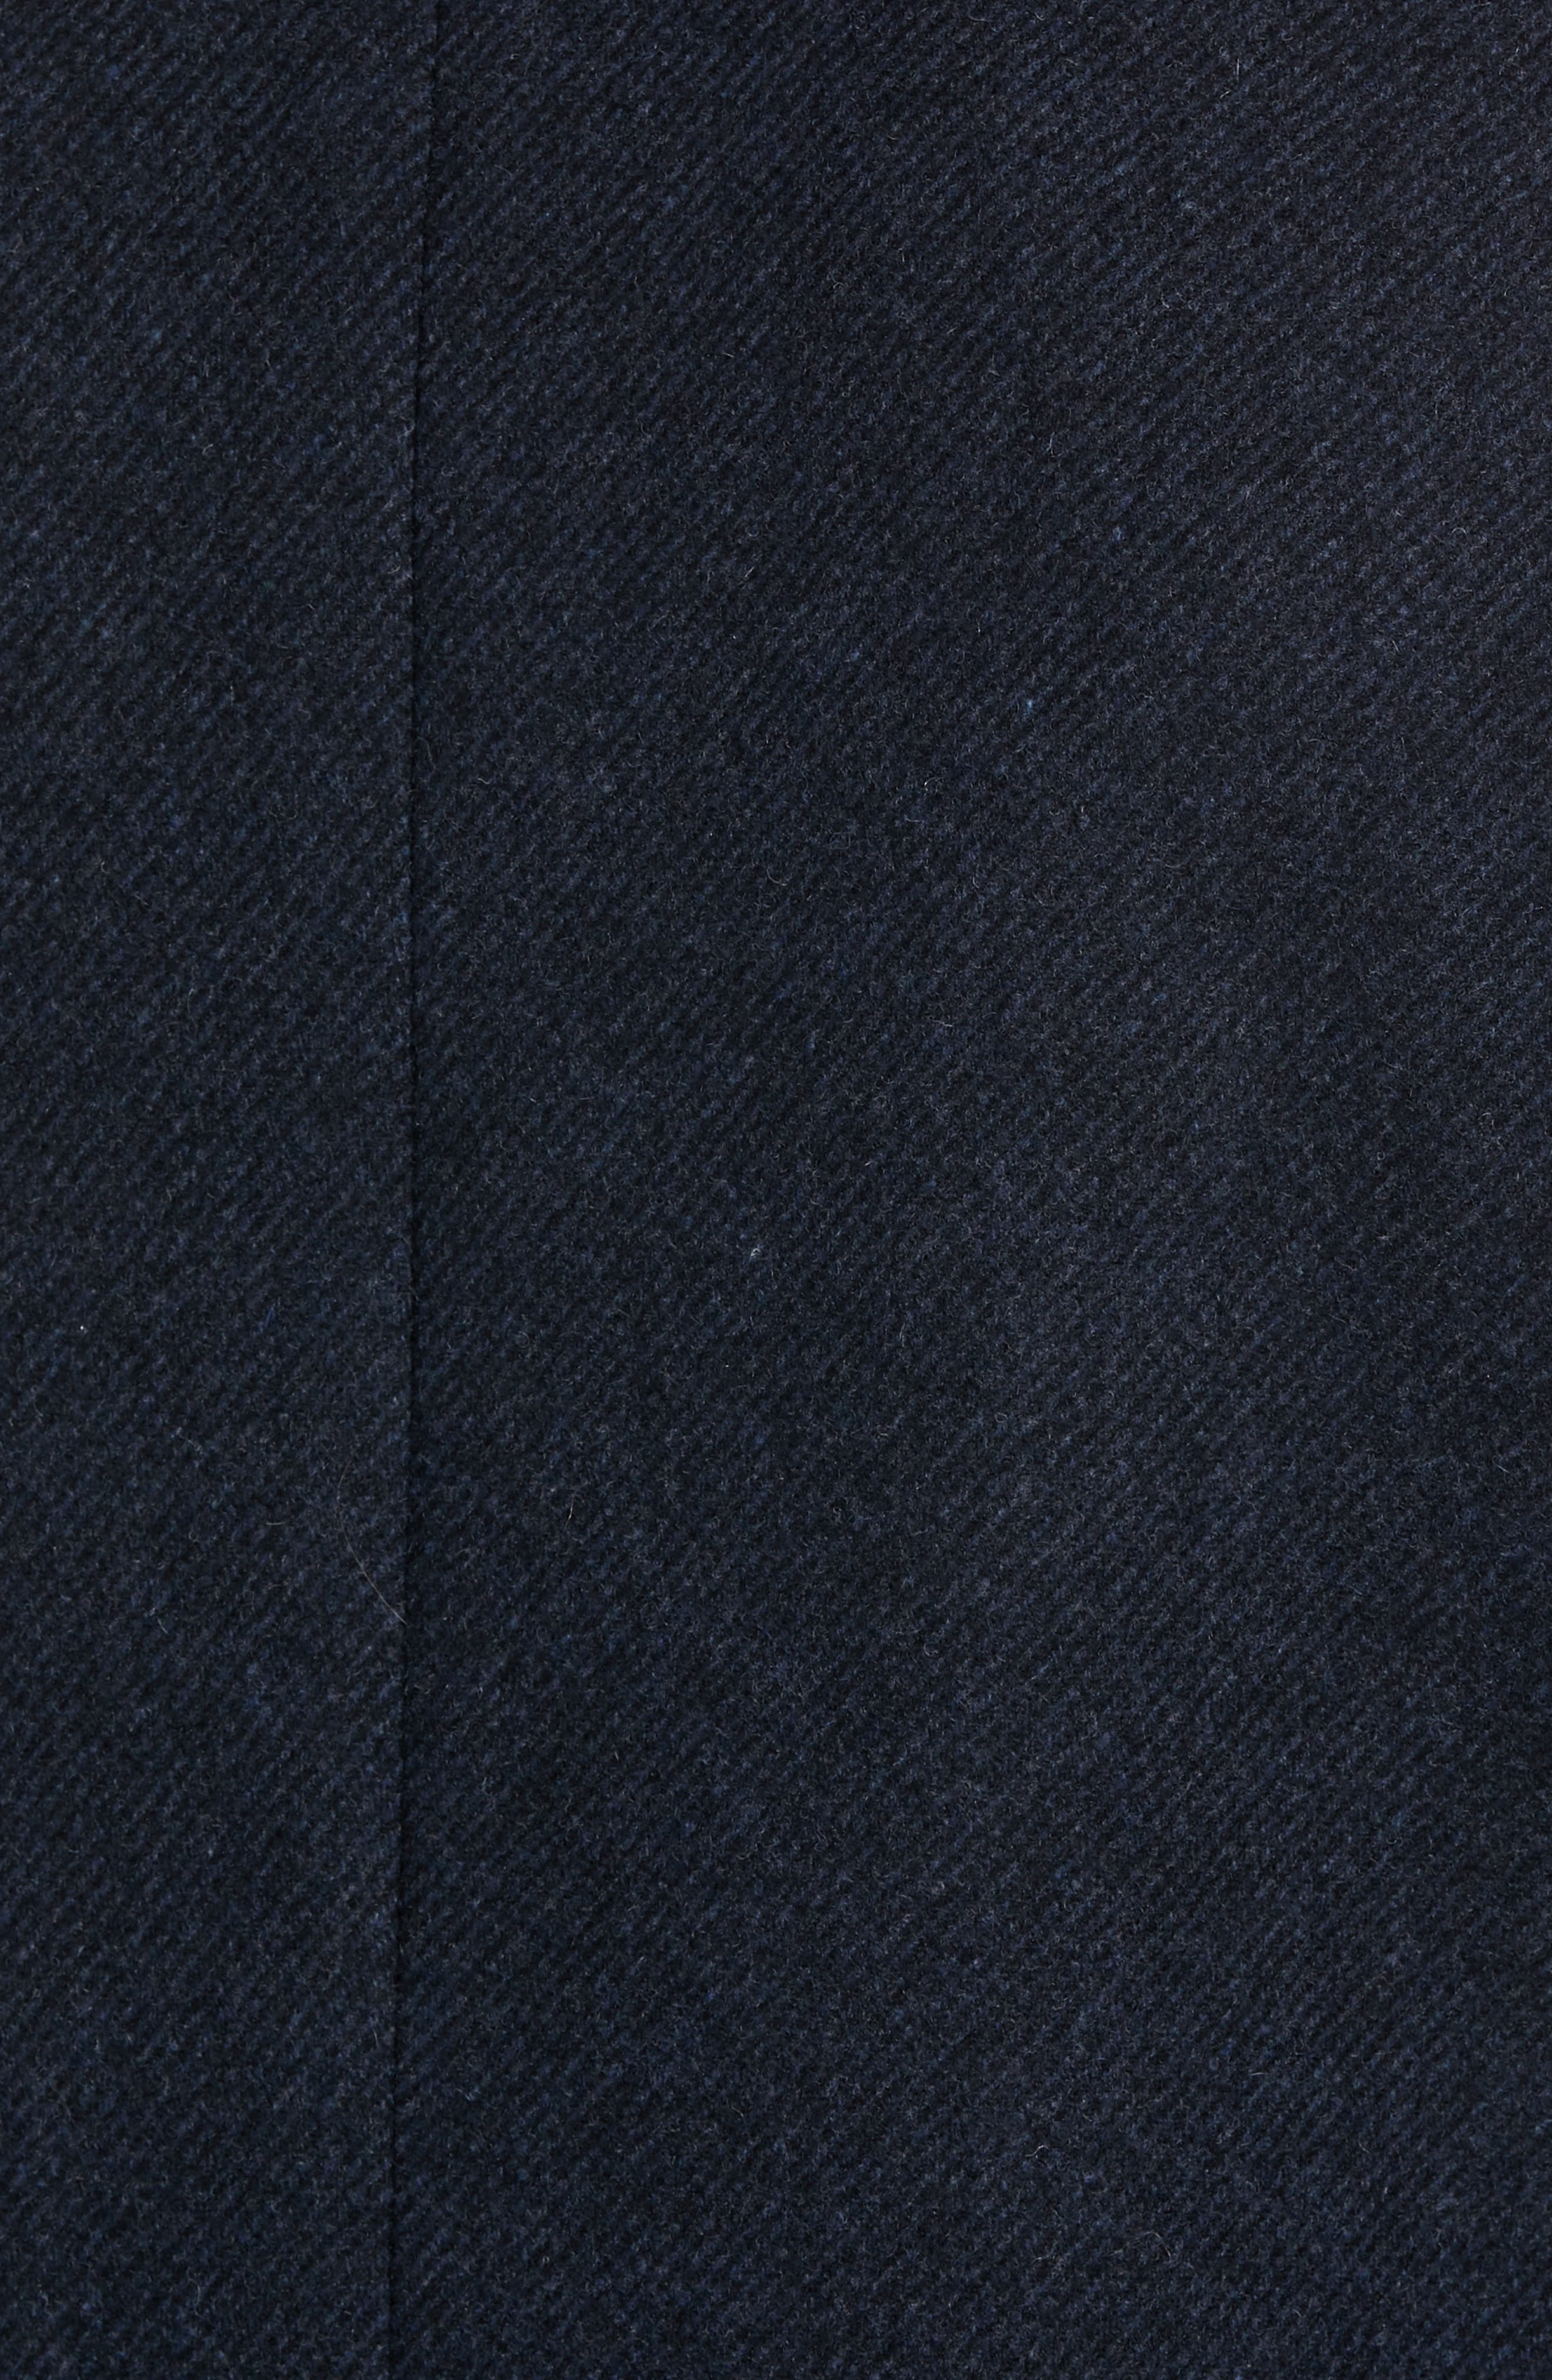 Trim Fit Twill Topcoat,                             Alternate thumbnail 6, color,                             410